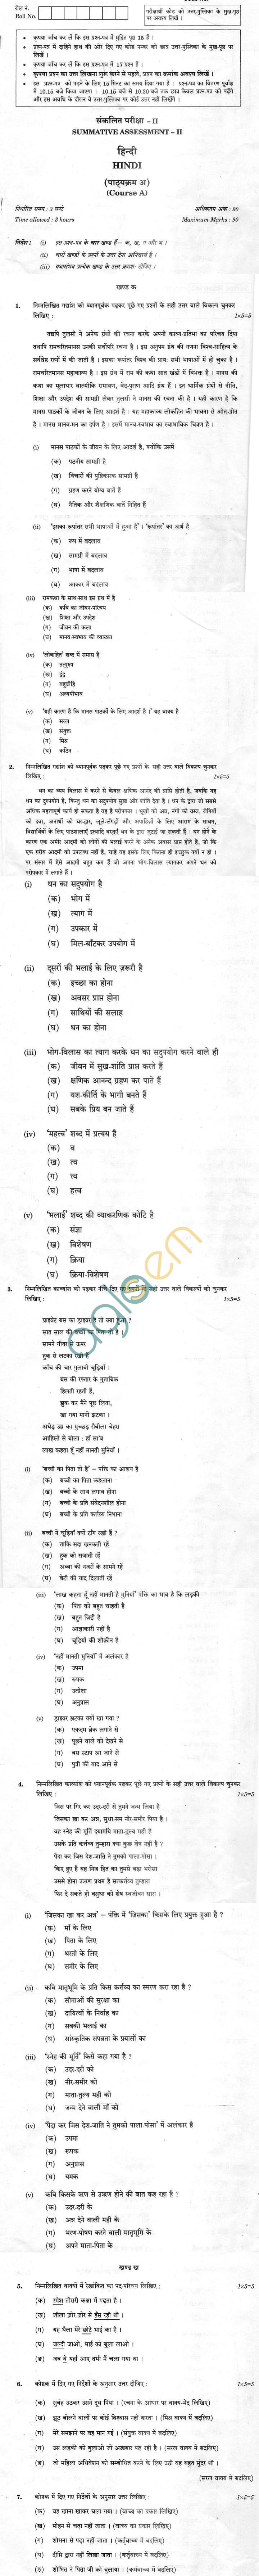 CBSE Compartment Exam 2013 Class X Question Paper - Hindi (Course A)